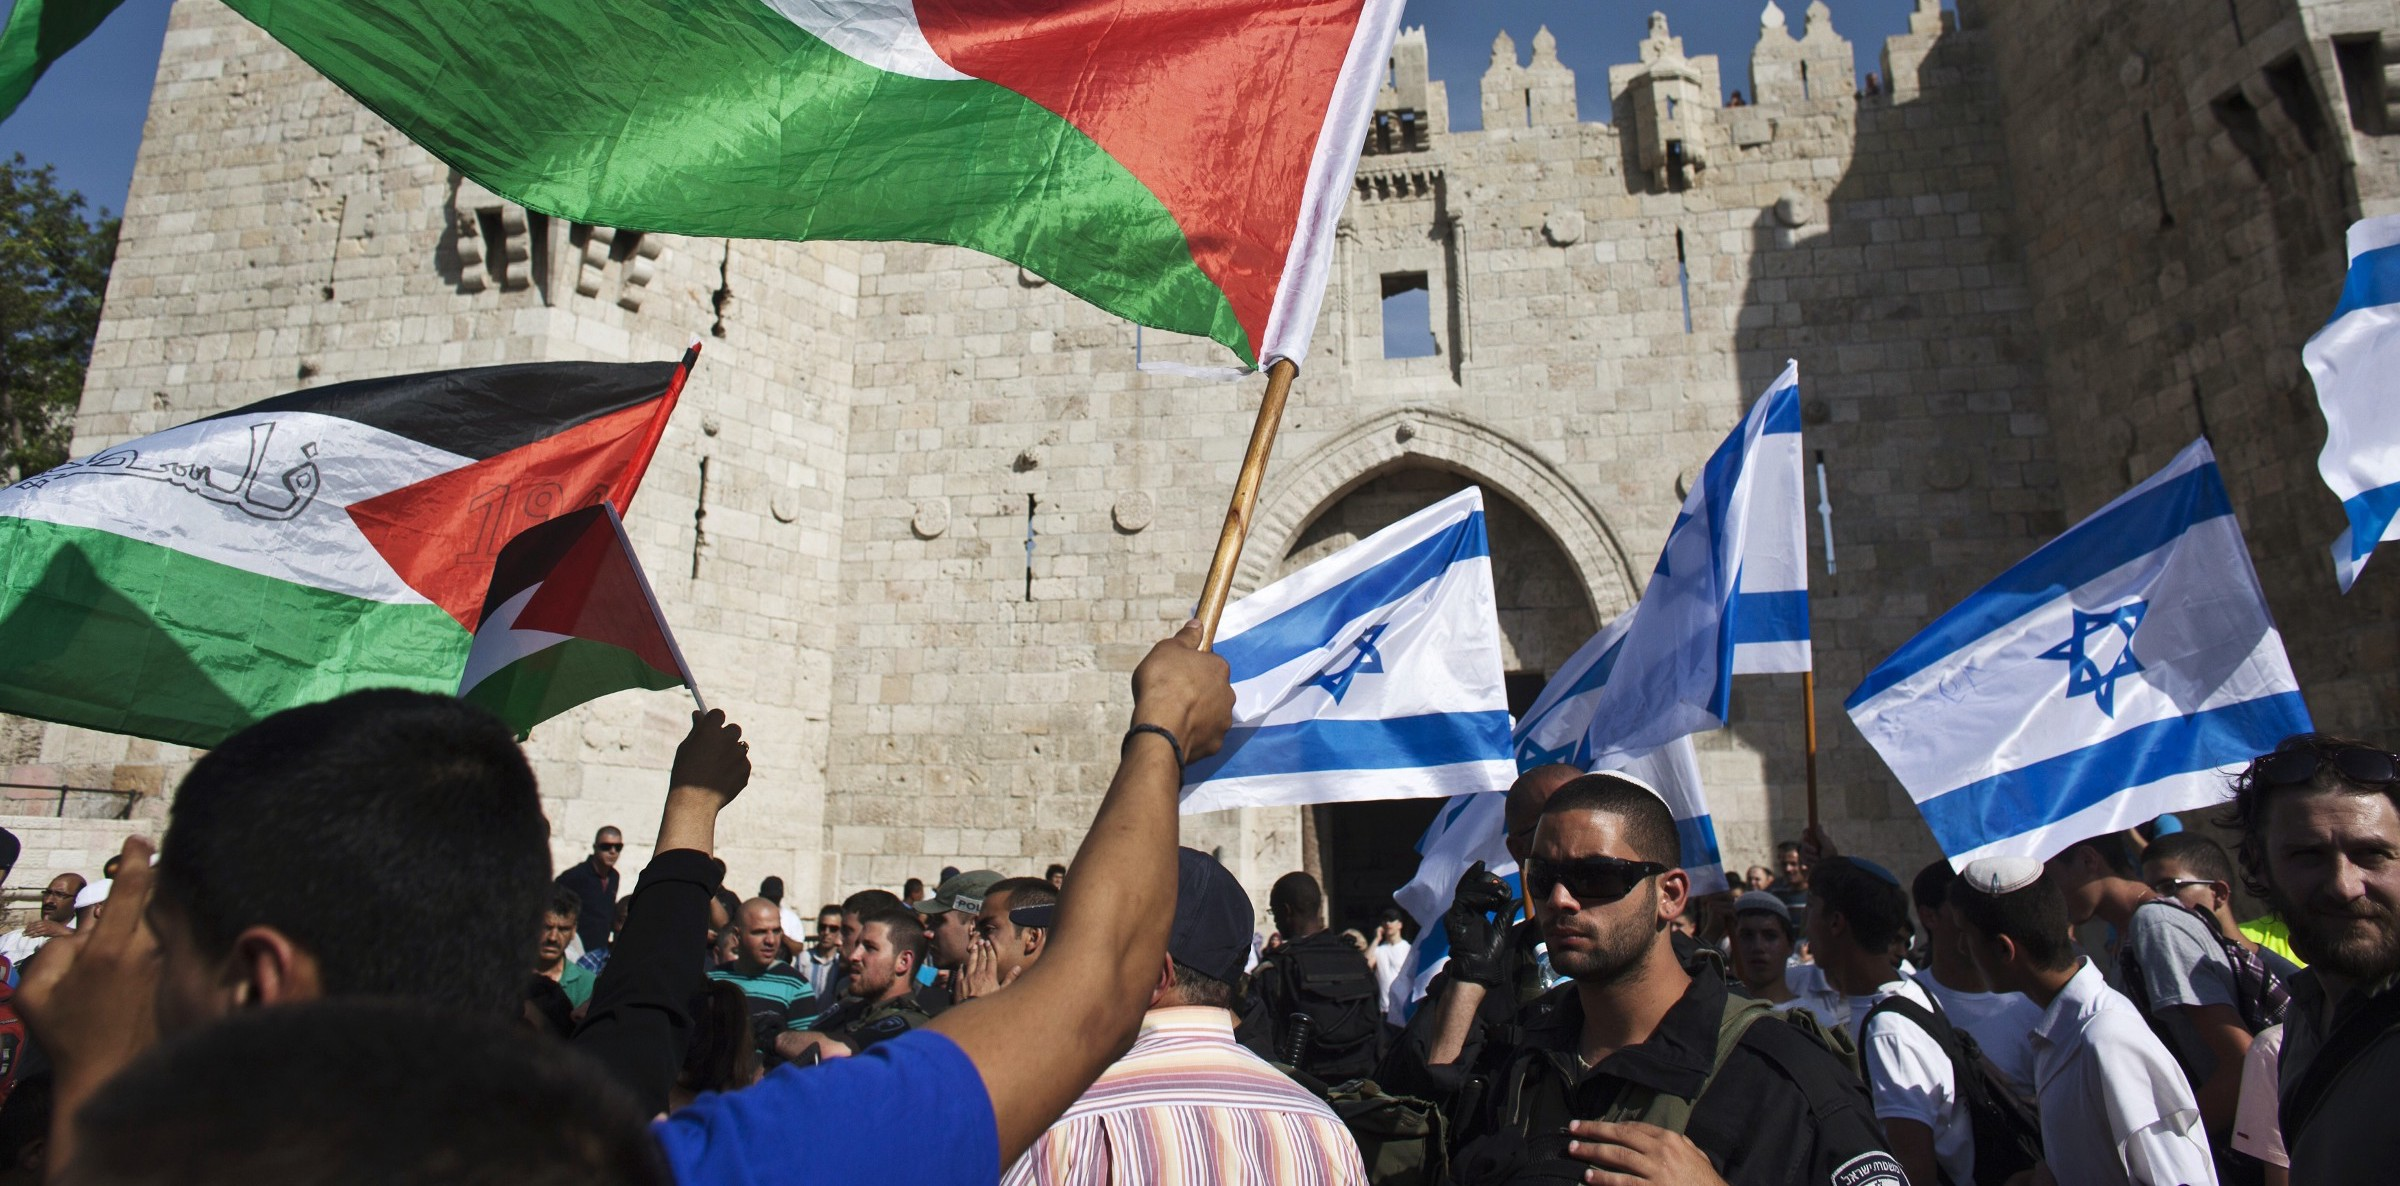 Israeli and Palestianian demonstrators waving the flags of their respective nations ( Image )